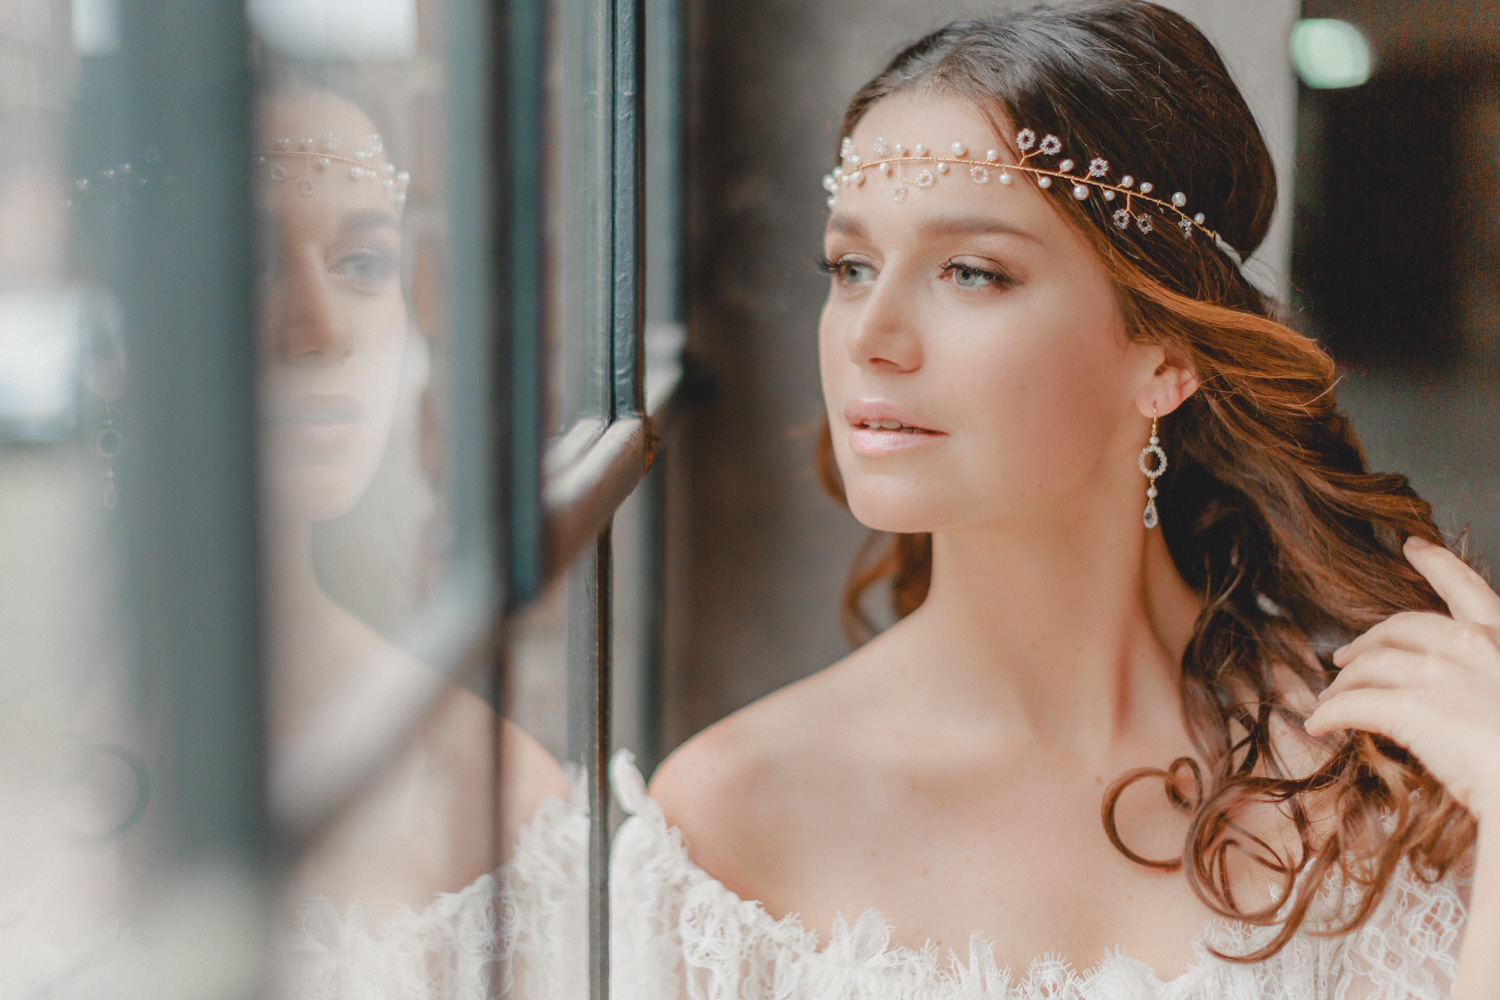 Reminiscent of a classic floral wreath, subtle pearls alternate with circularly arranged Swarovski crystals in this filigree crafted headpiece, shining like delicate little flowers in the hair of the bride.